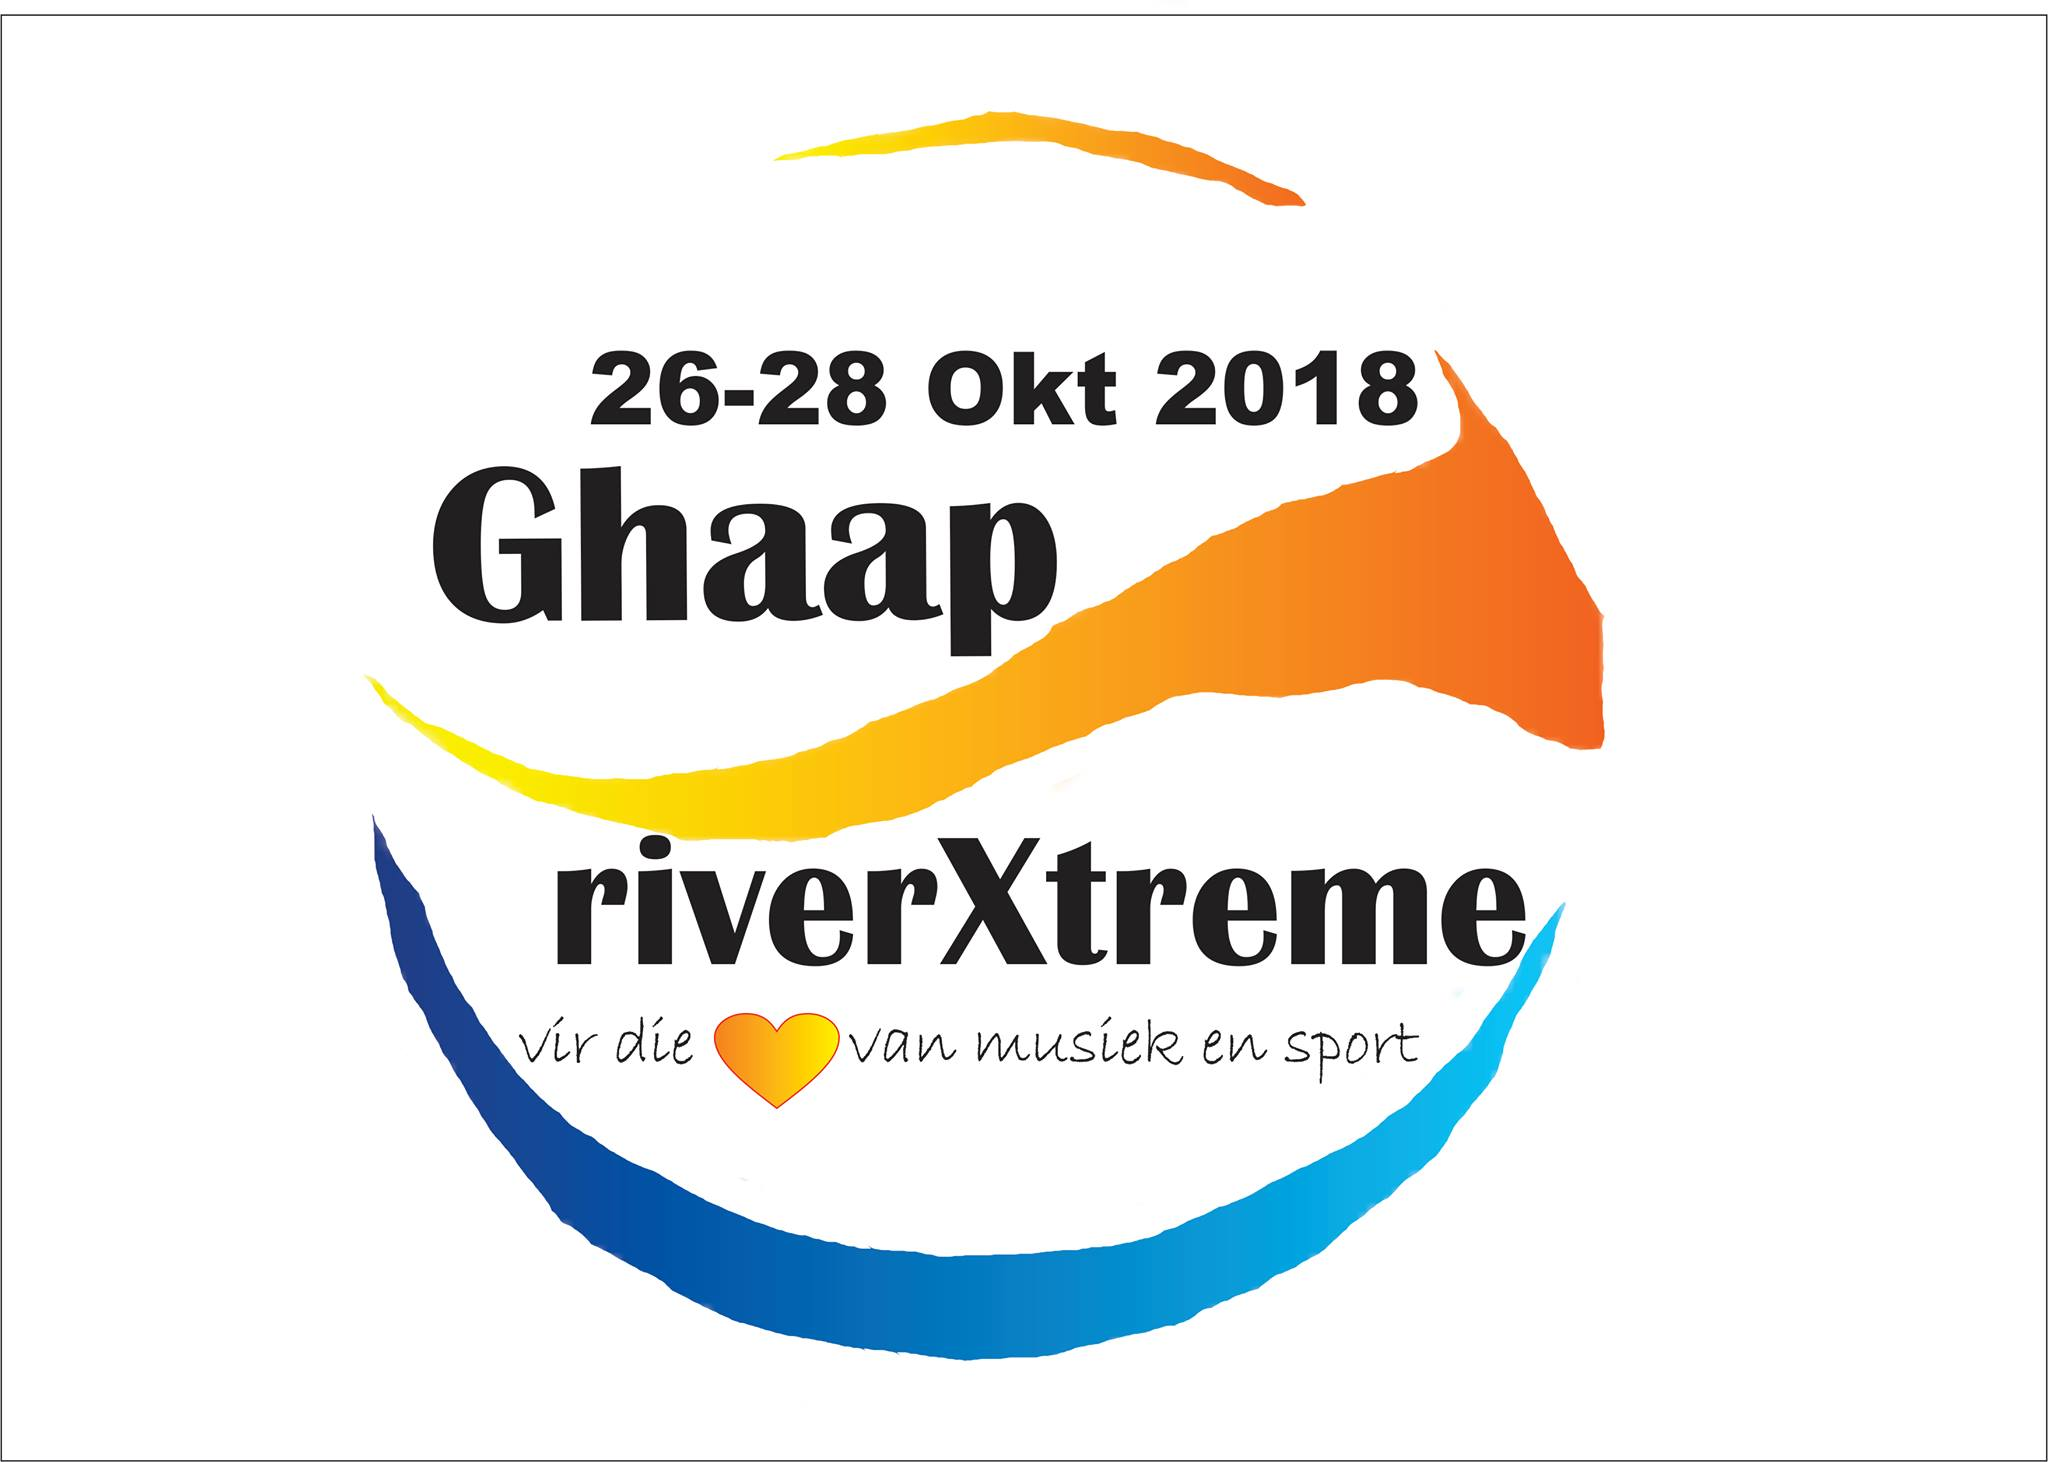 Ghaap river xtreme at Broadwater October